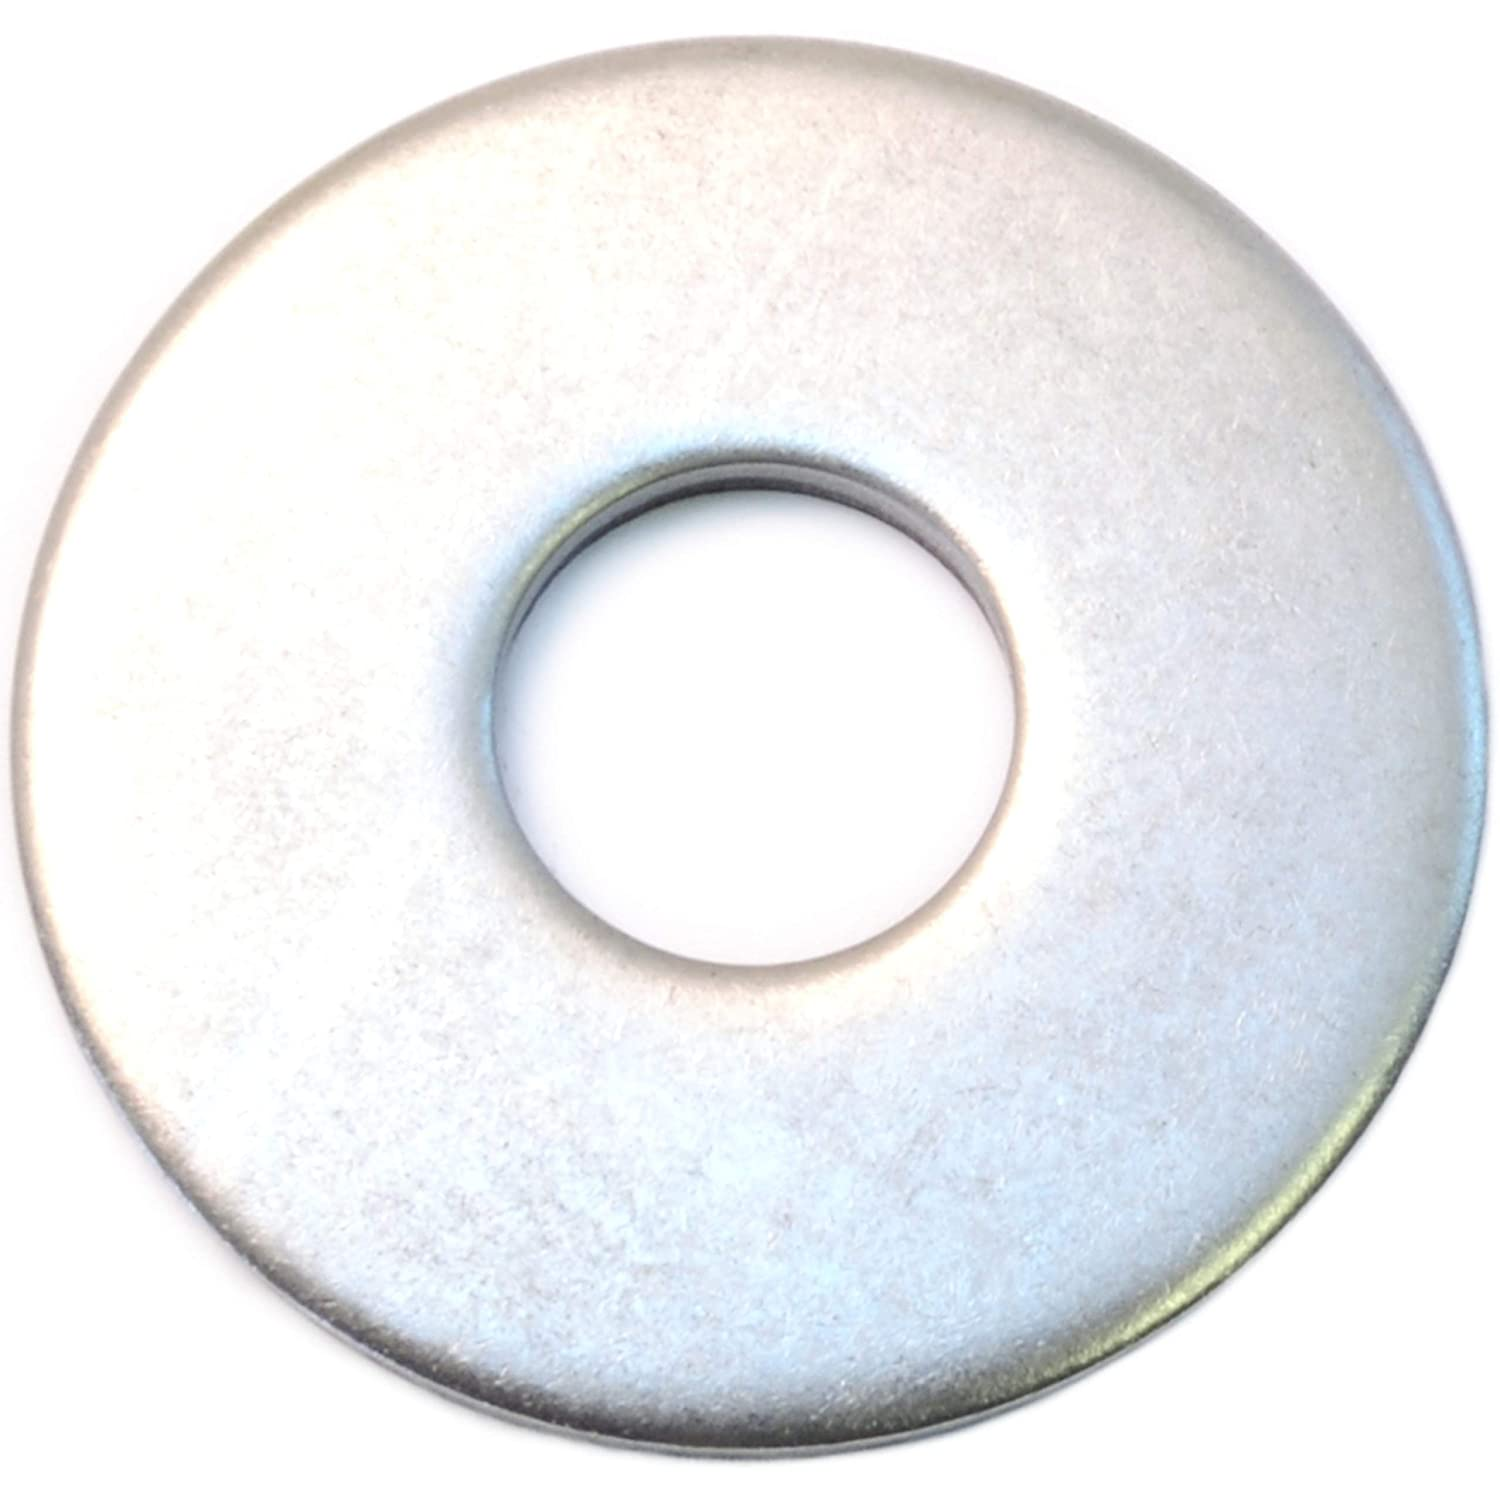 Hard to Find Fastener 4 Fender Washers 14mm x 44mm Piece 6